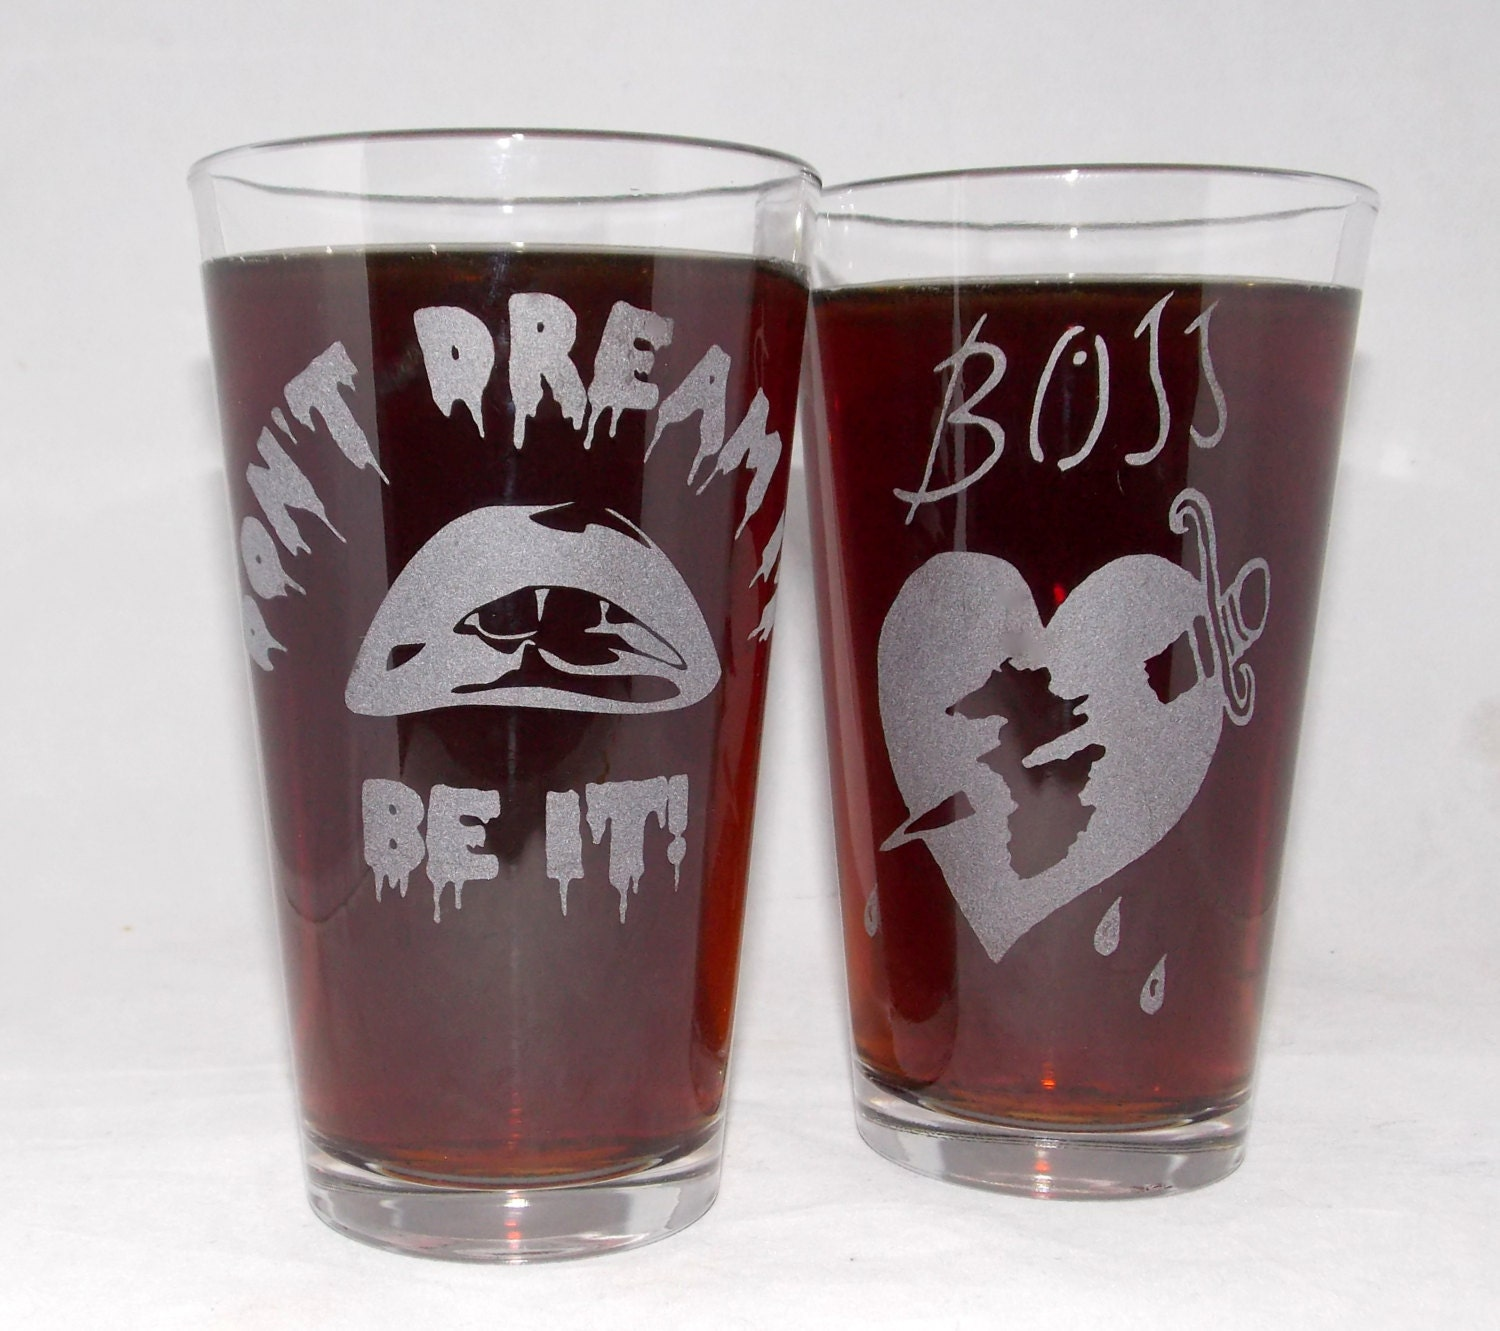 Rocky Horror Picture Show Etched Pint Glass Set - CyberGlassware